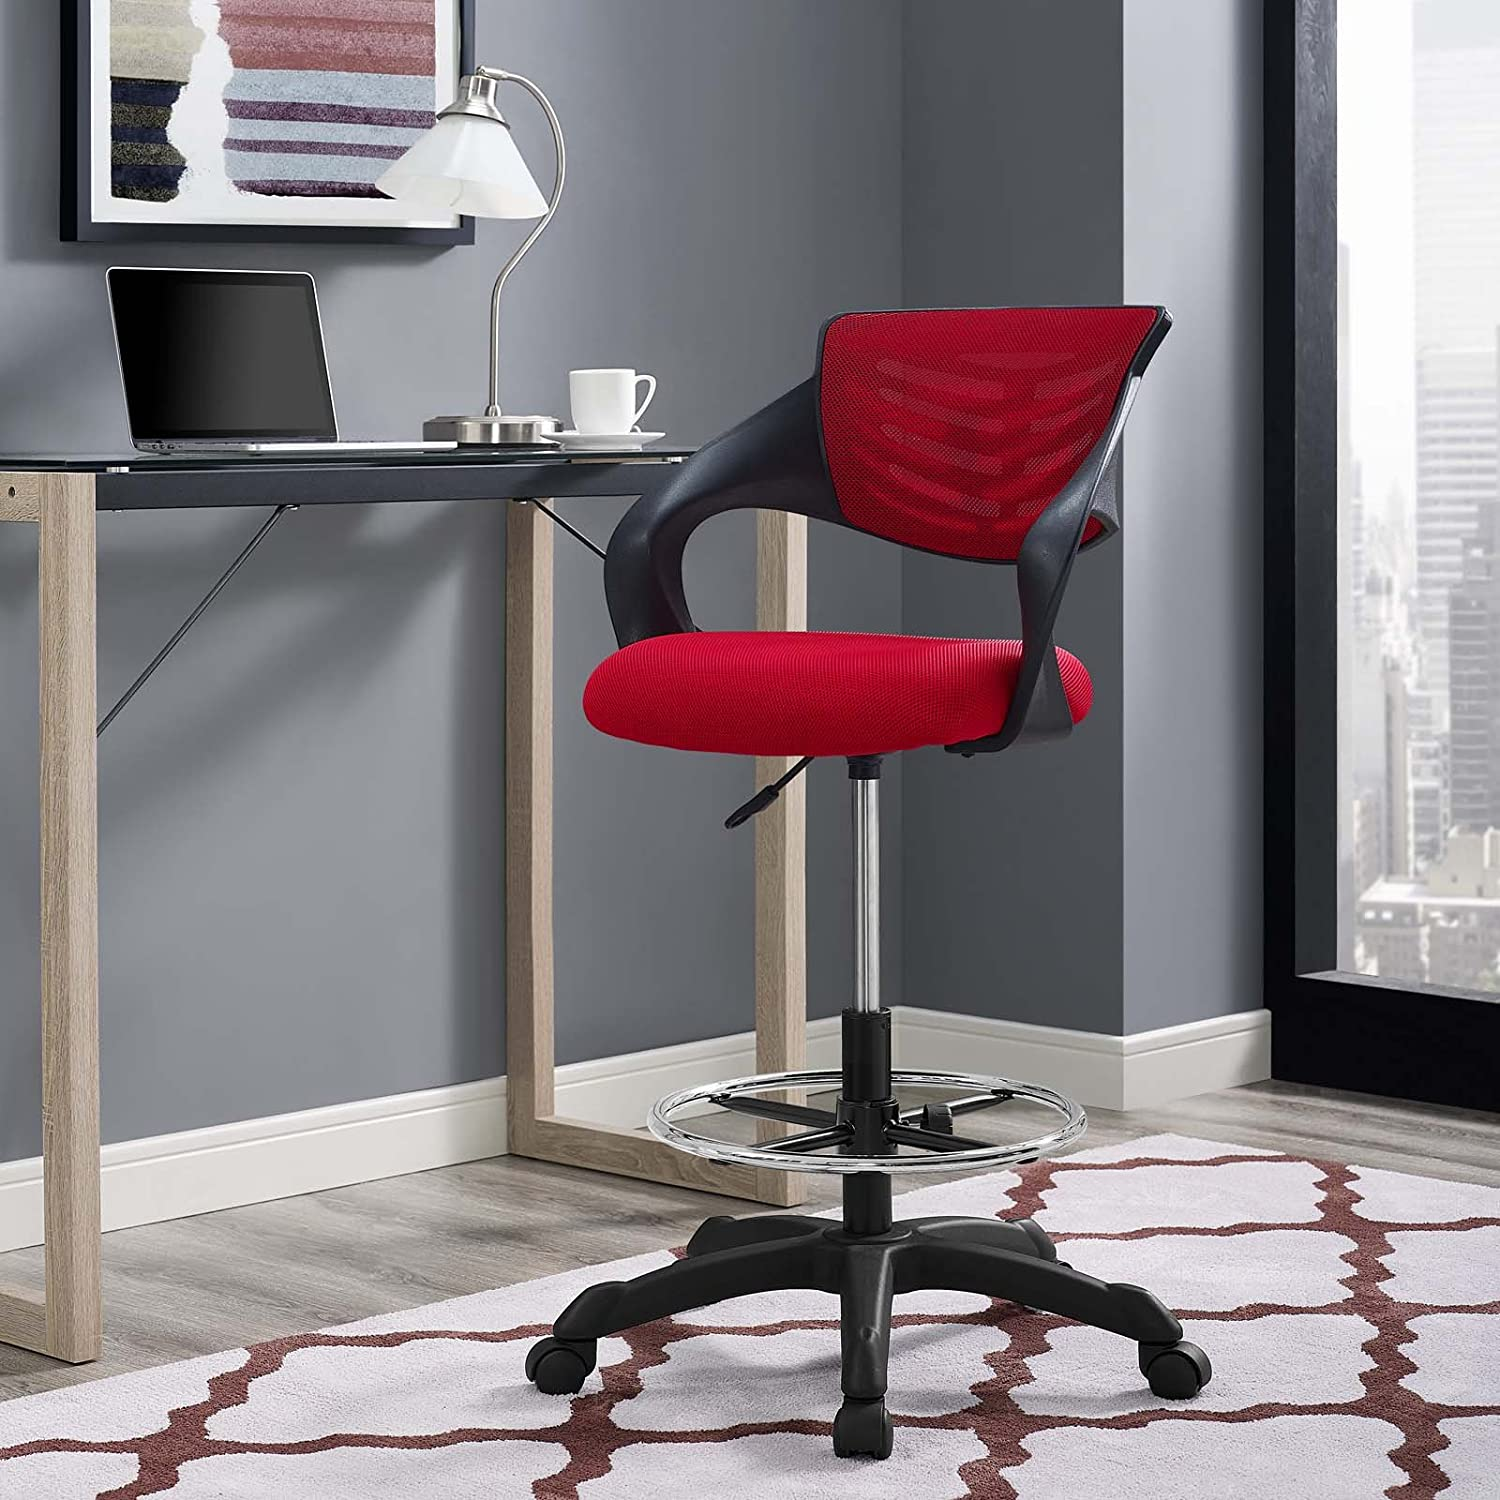 Wondrous Modway Thrive Drafting Chair In Red Reception Desk Chair Tall Office Chair For Adjustable Standing Desks Creativecarmelina Interior Chair Design Creativecarmelinacom